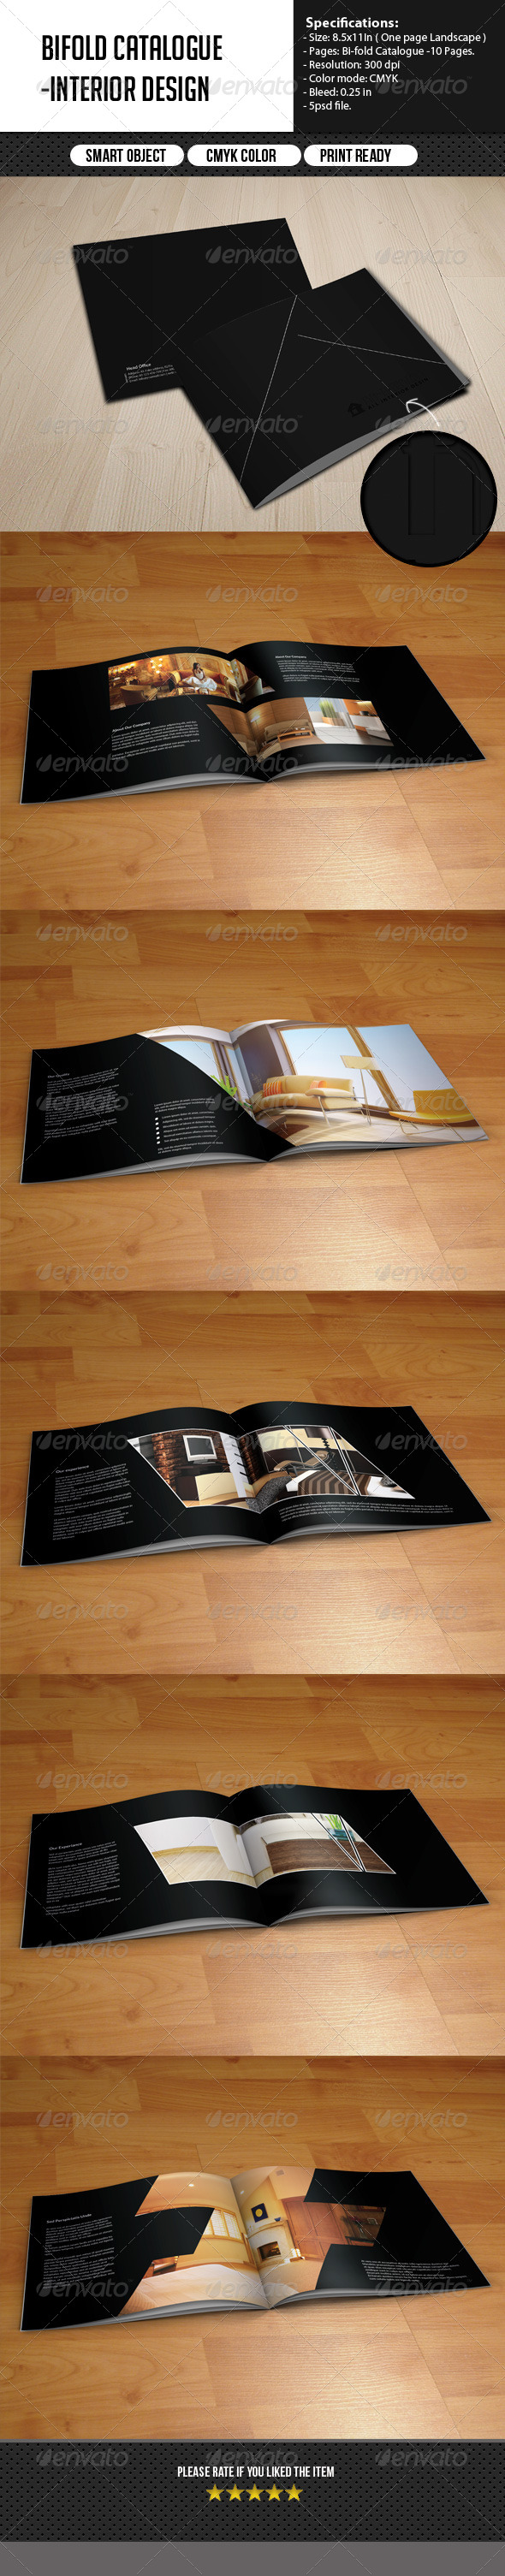 GraphicRiver Bifold Catalog Interior Design 5965149